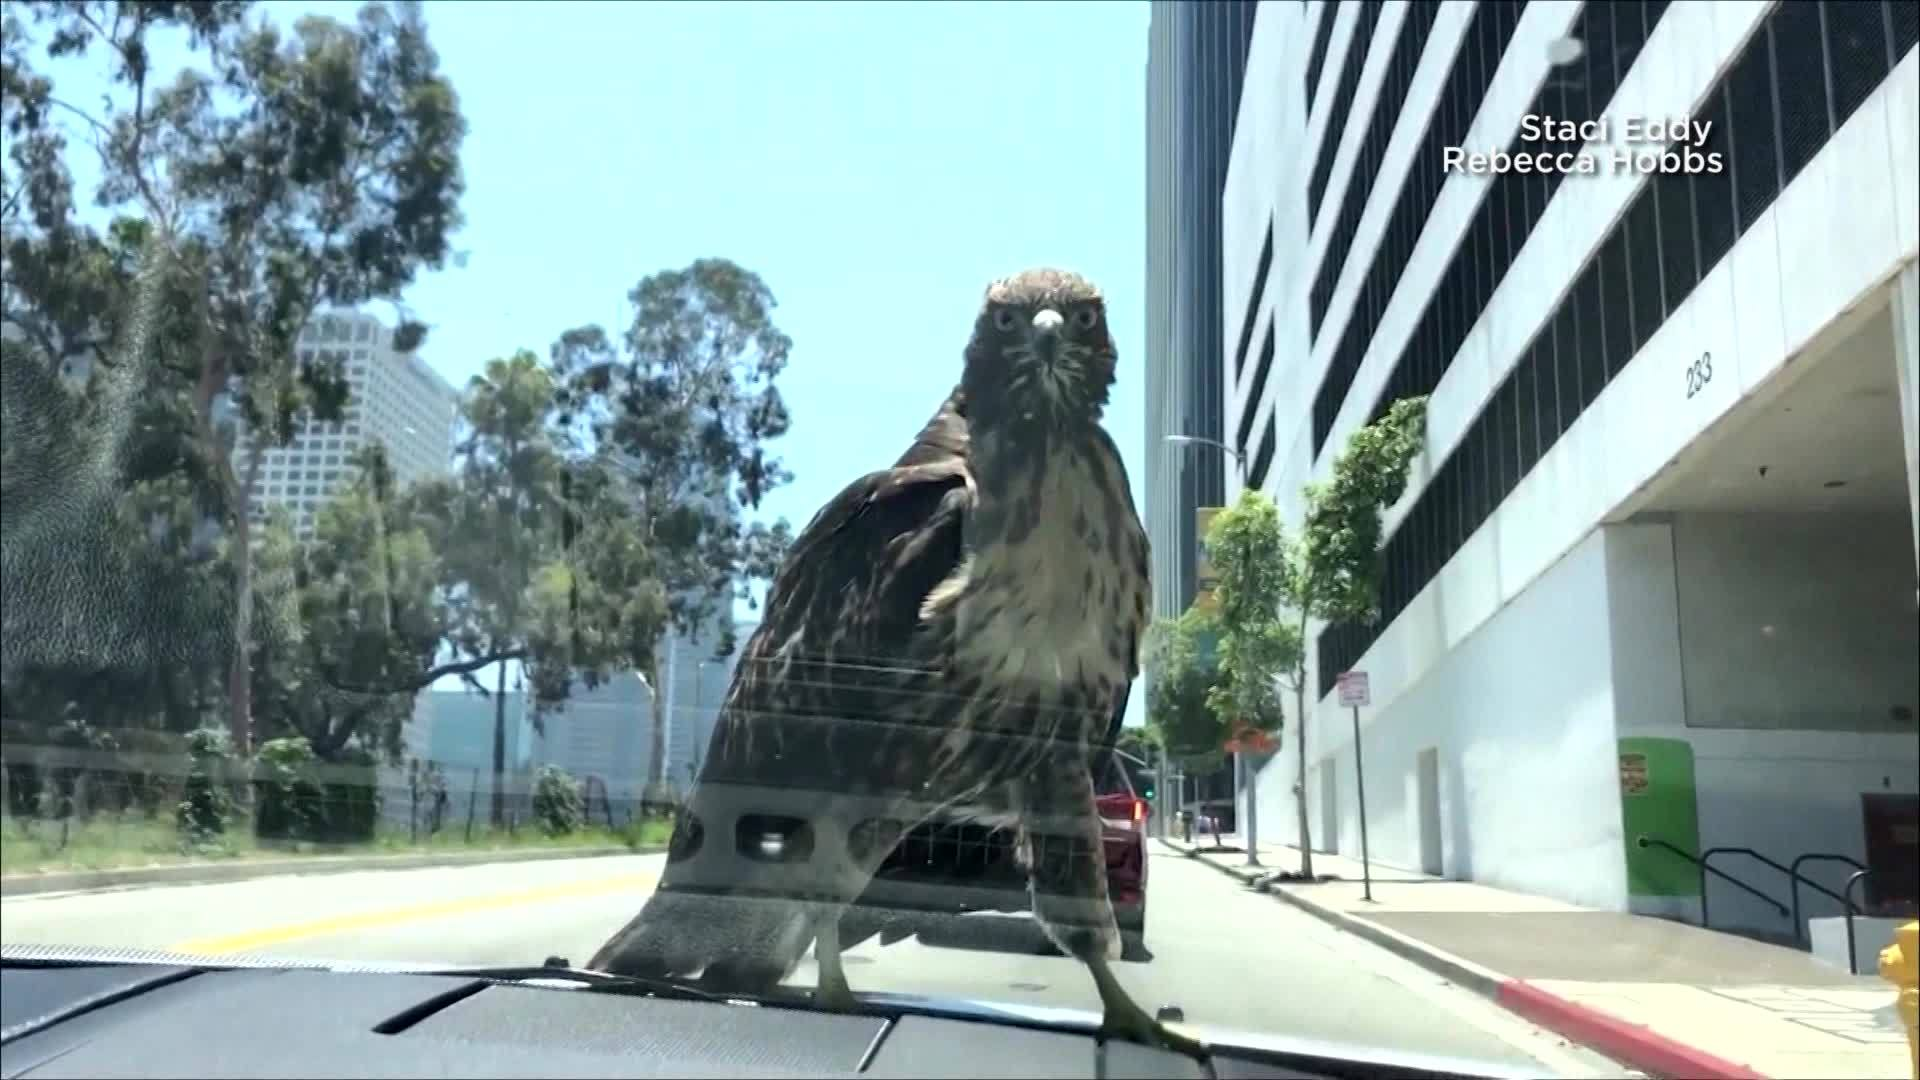 Hawk hitches ride on car in California